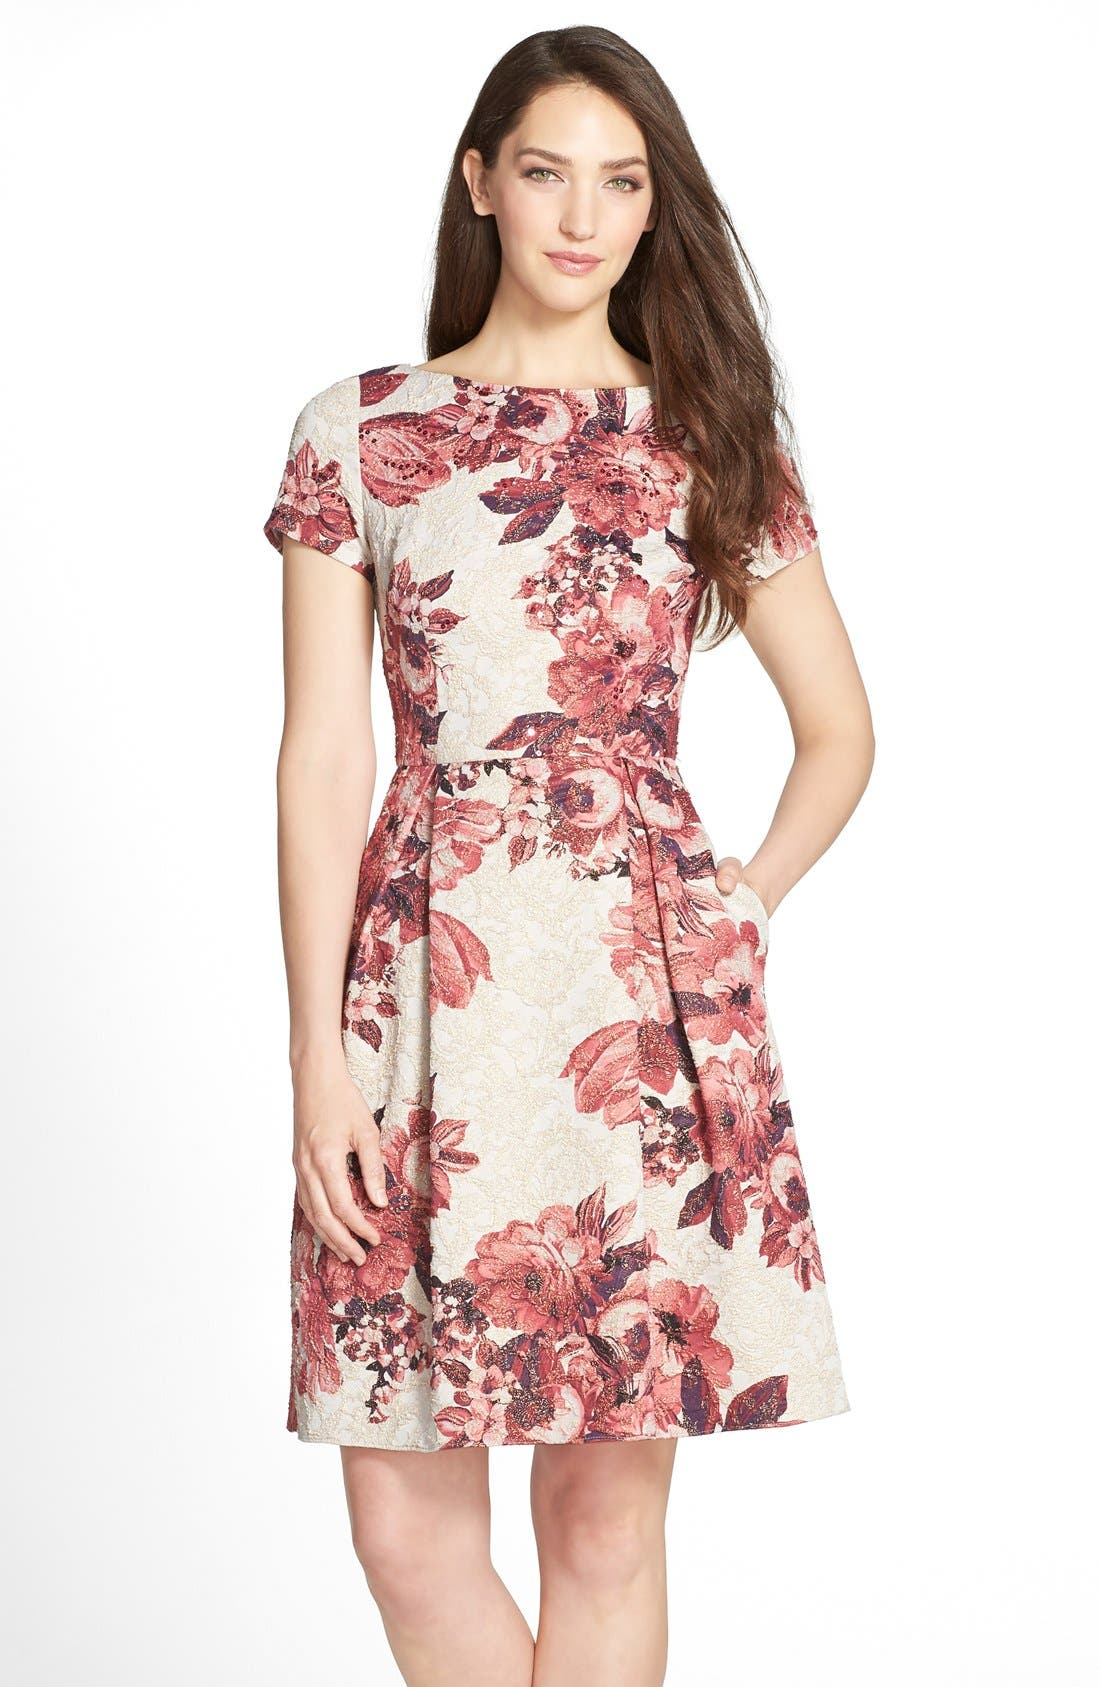 Alternate Image 1 Selected - Adrianna Papell Floral Matelassé Fit & Flare Dress (Regular & Petite)